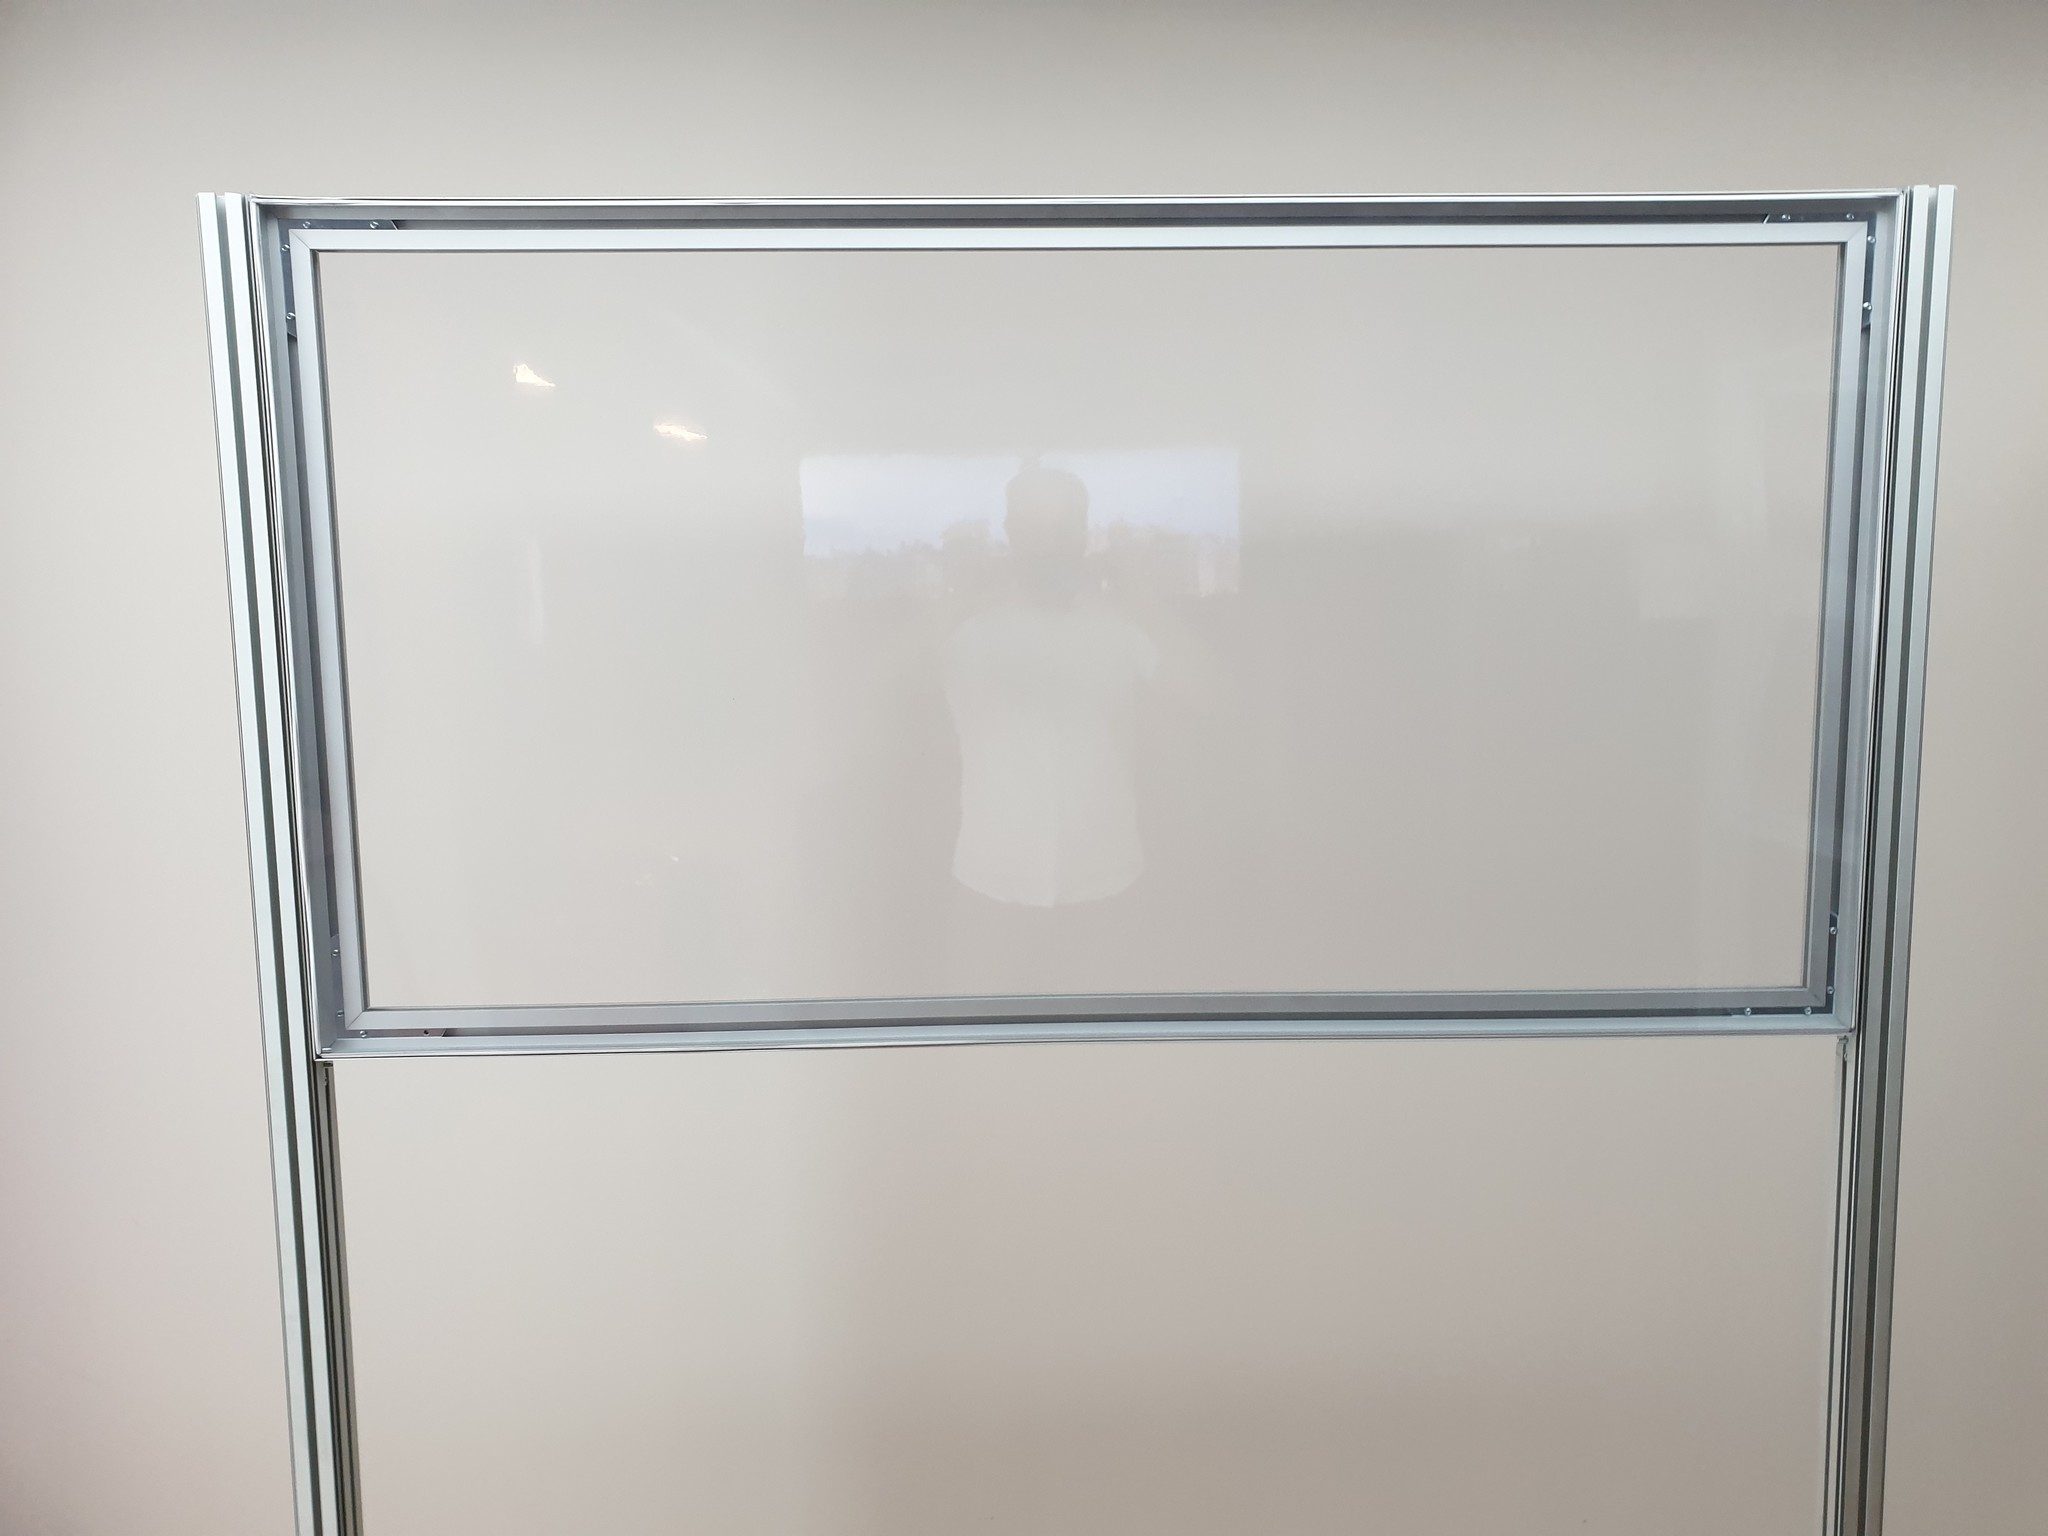 2d Counter Modell transparentes Tuch